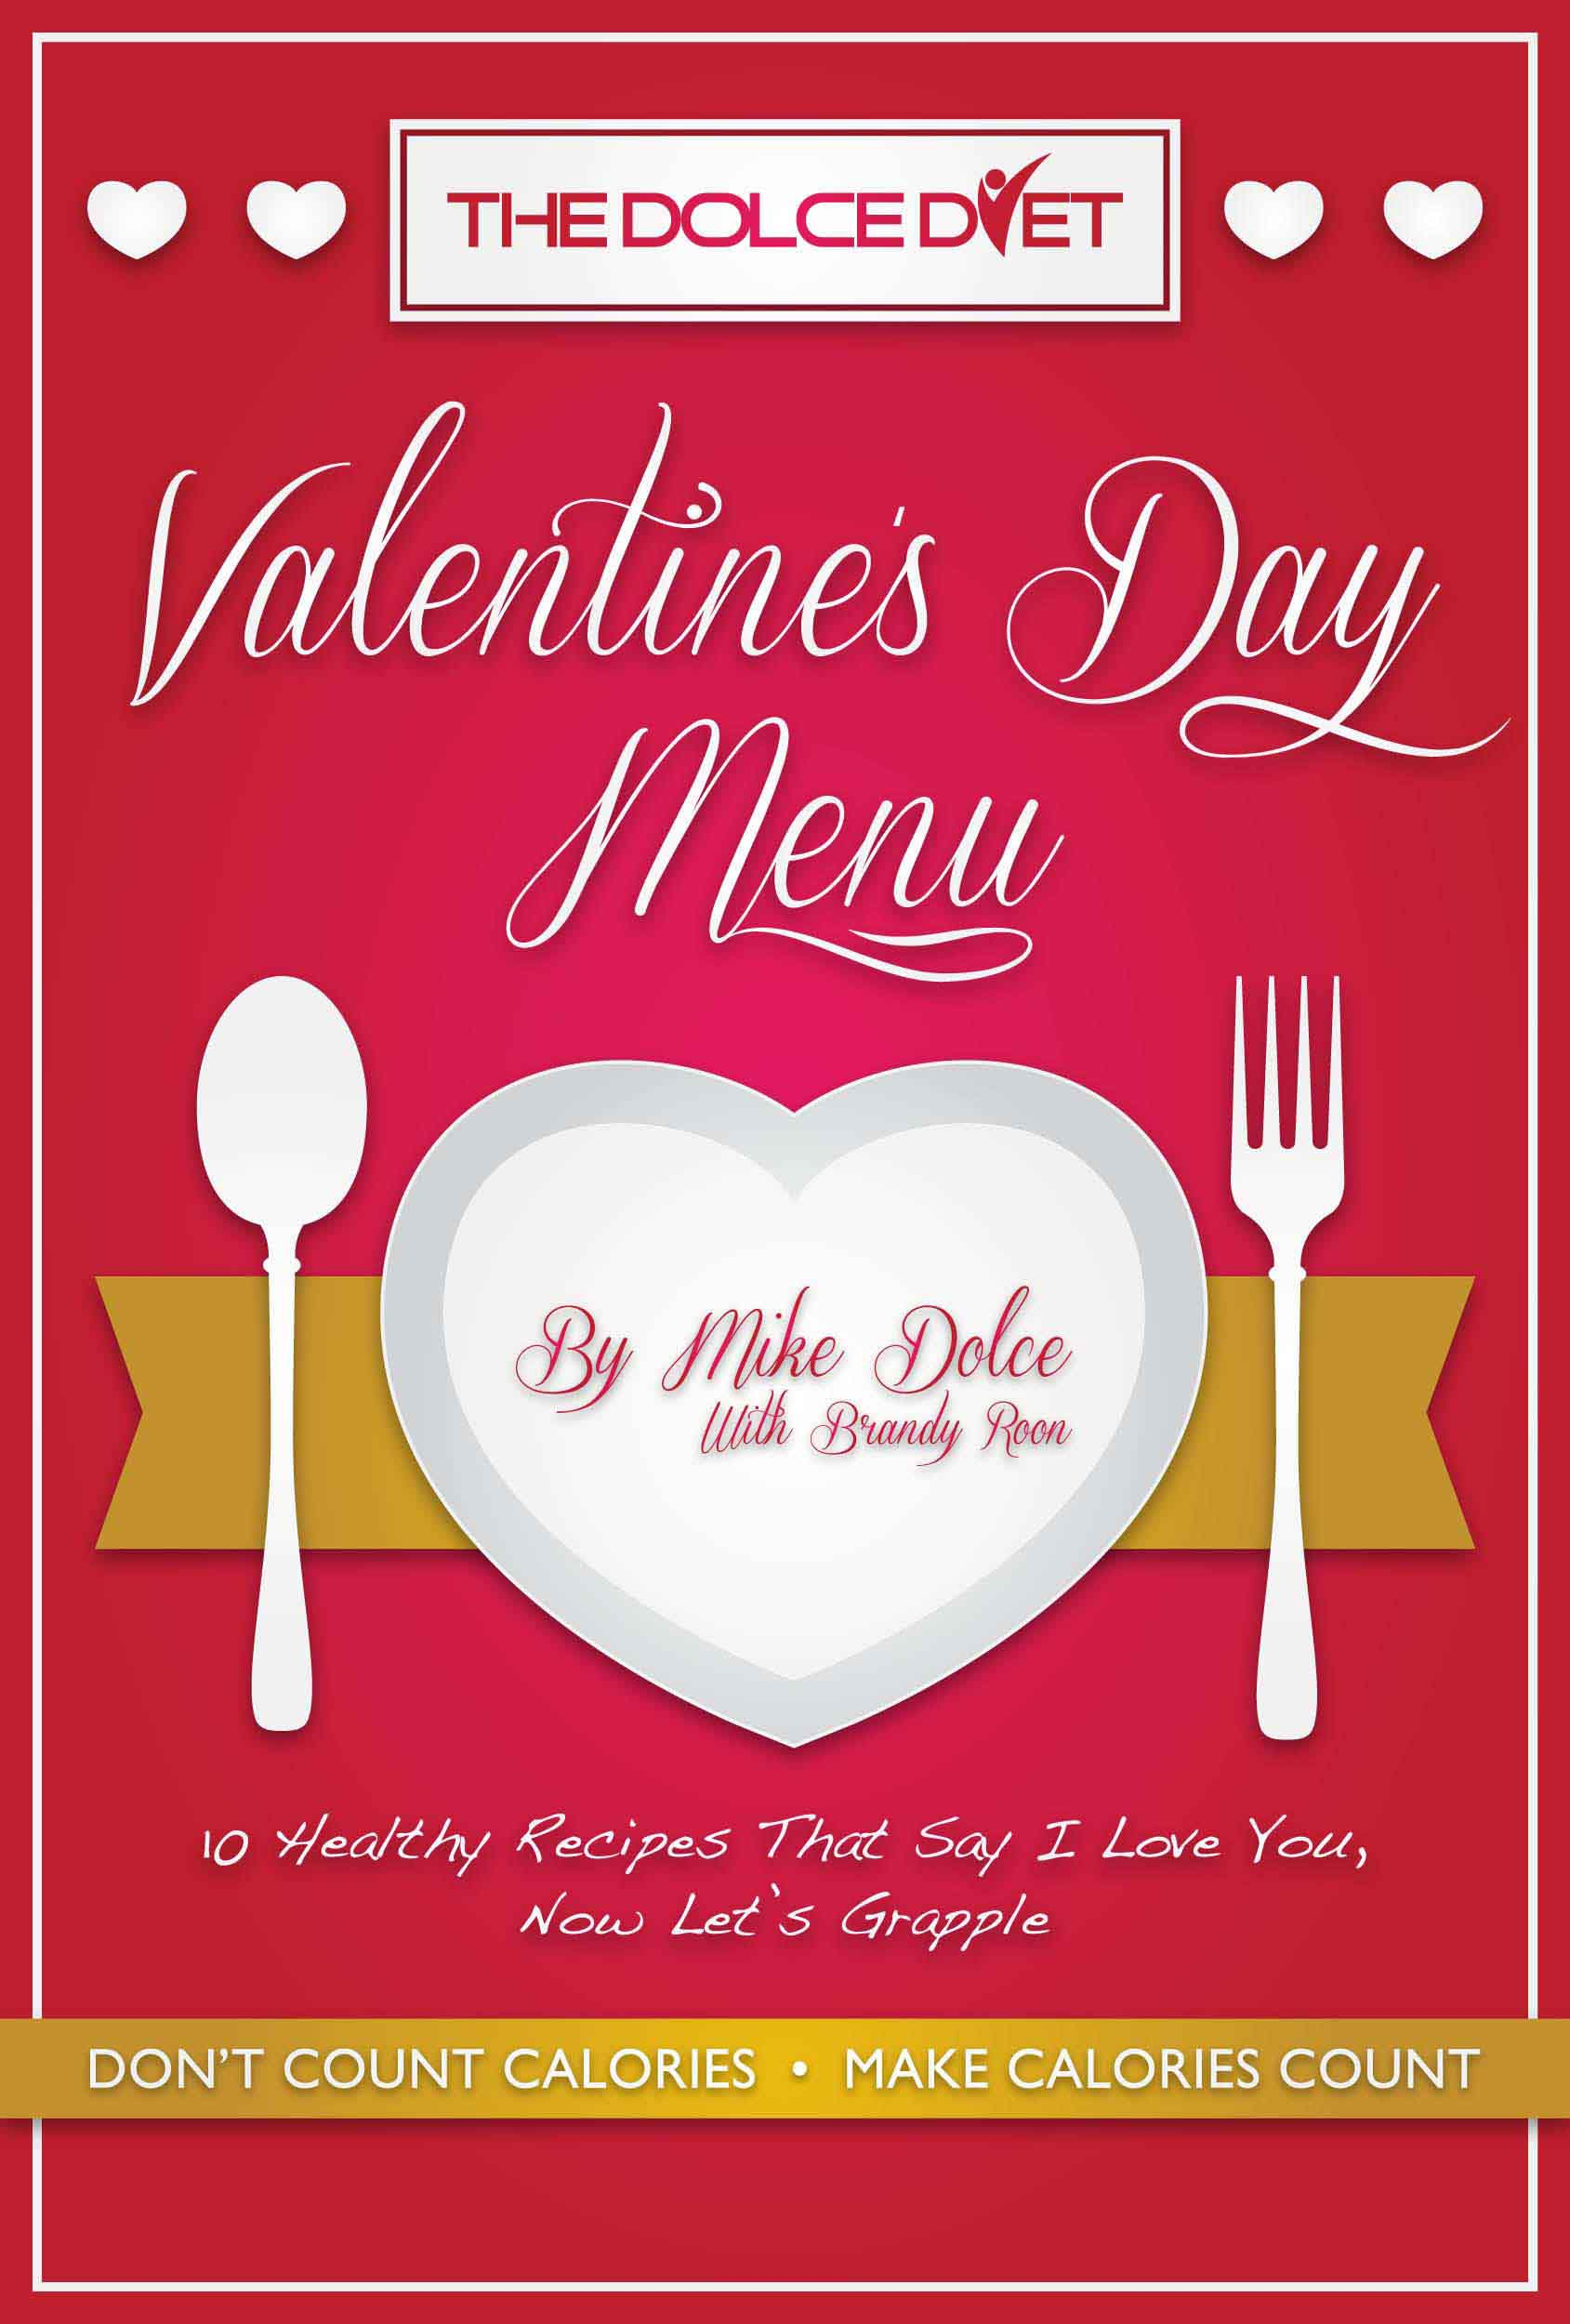 free on kindle  the dolce diet valentine u0026 39 s day menu